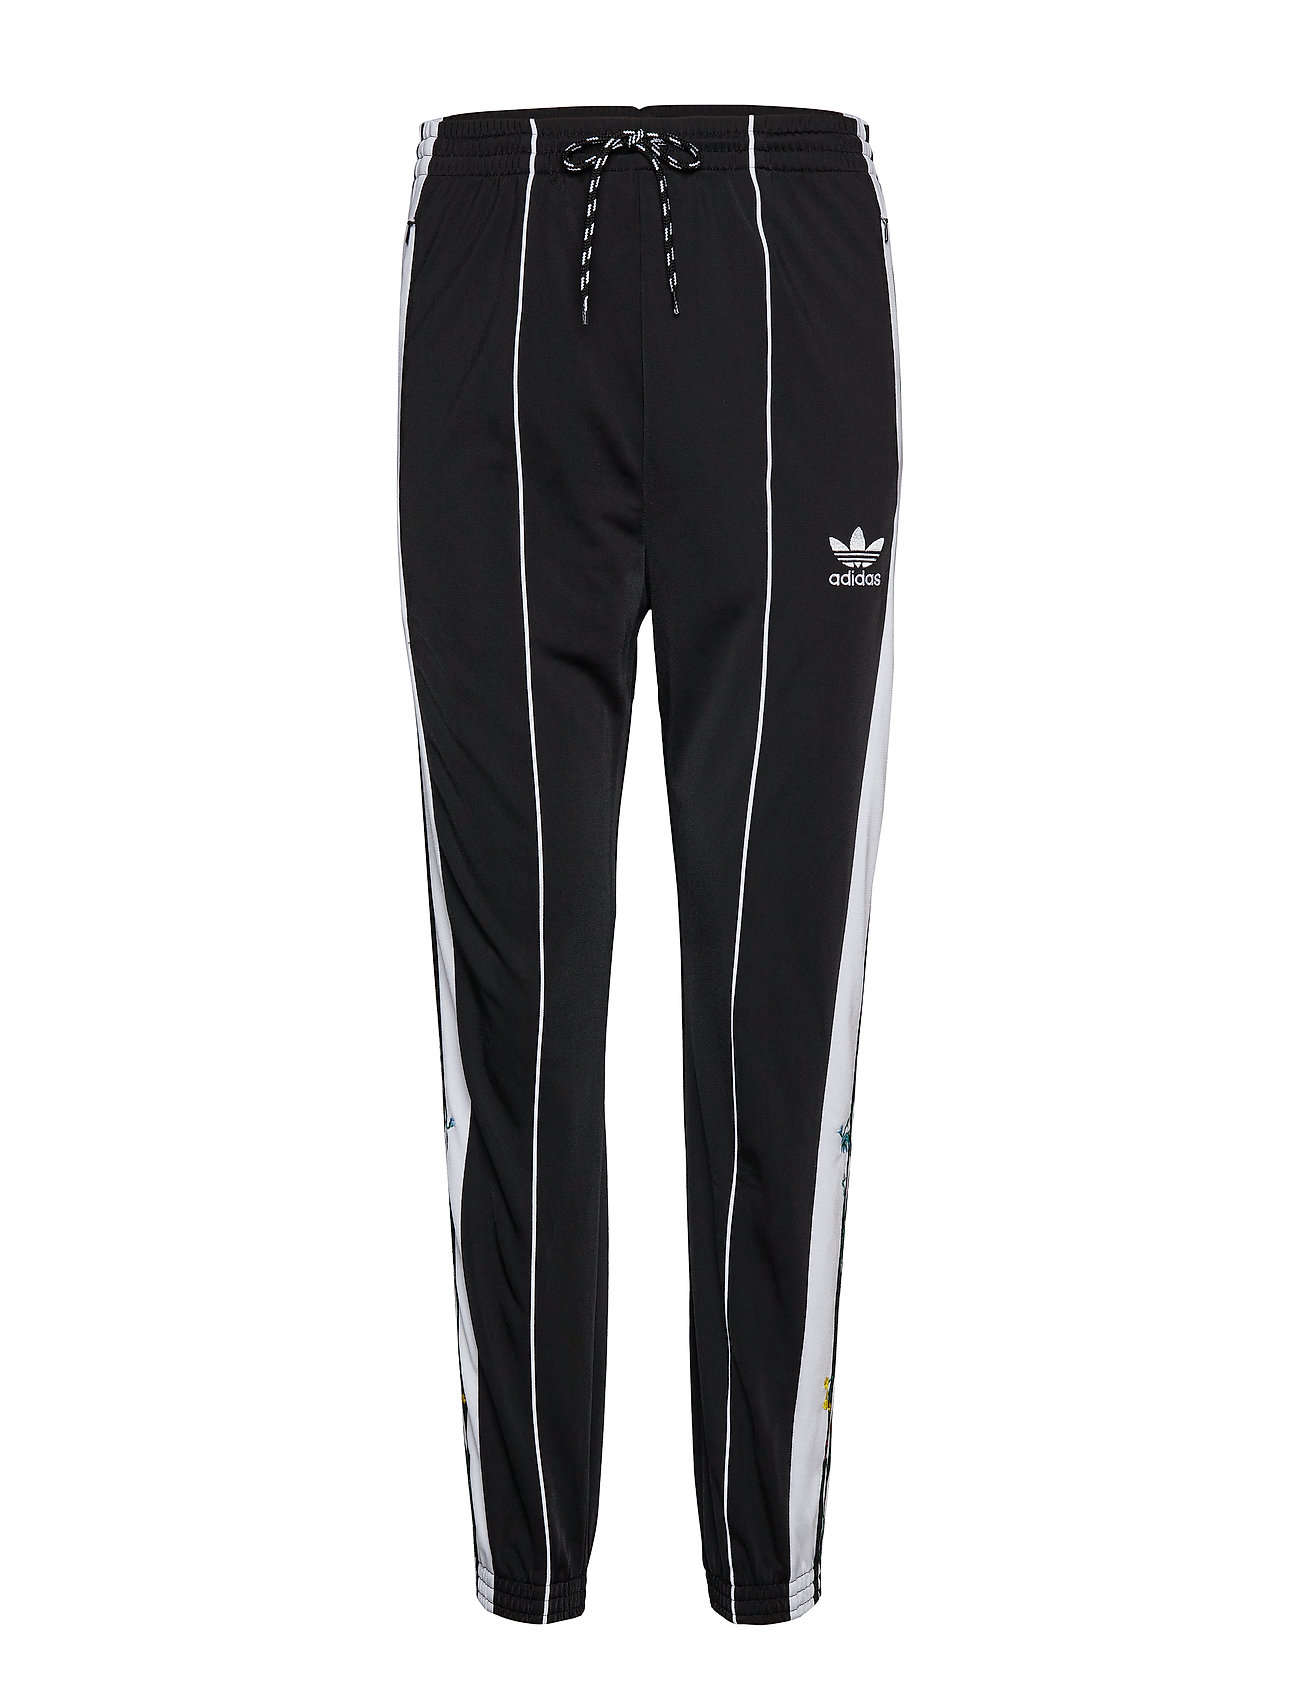 Track Pants by Adidas Originals